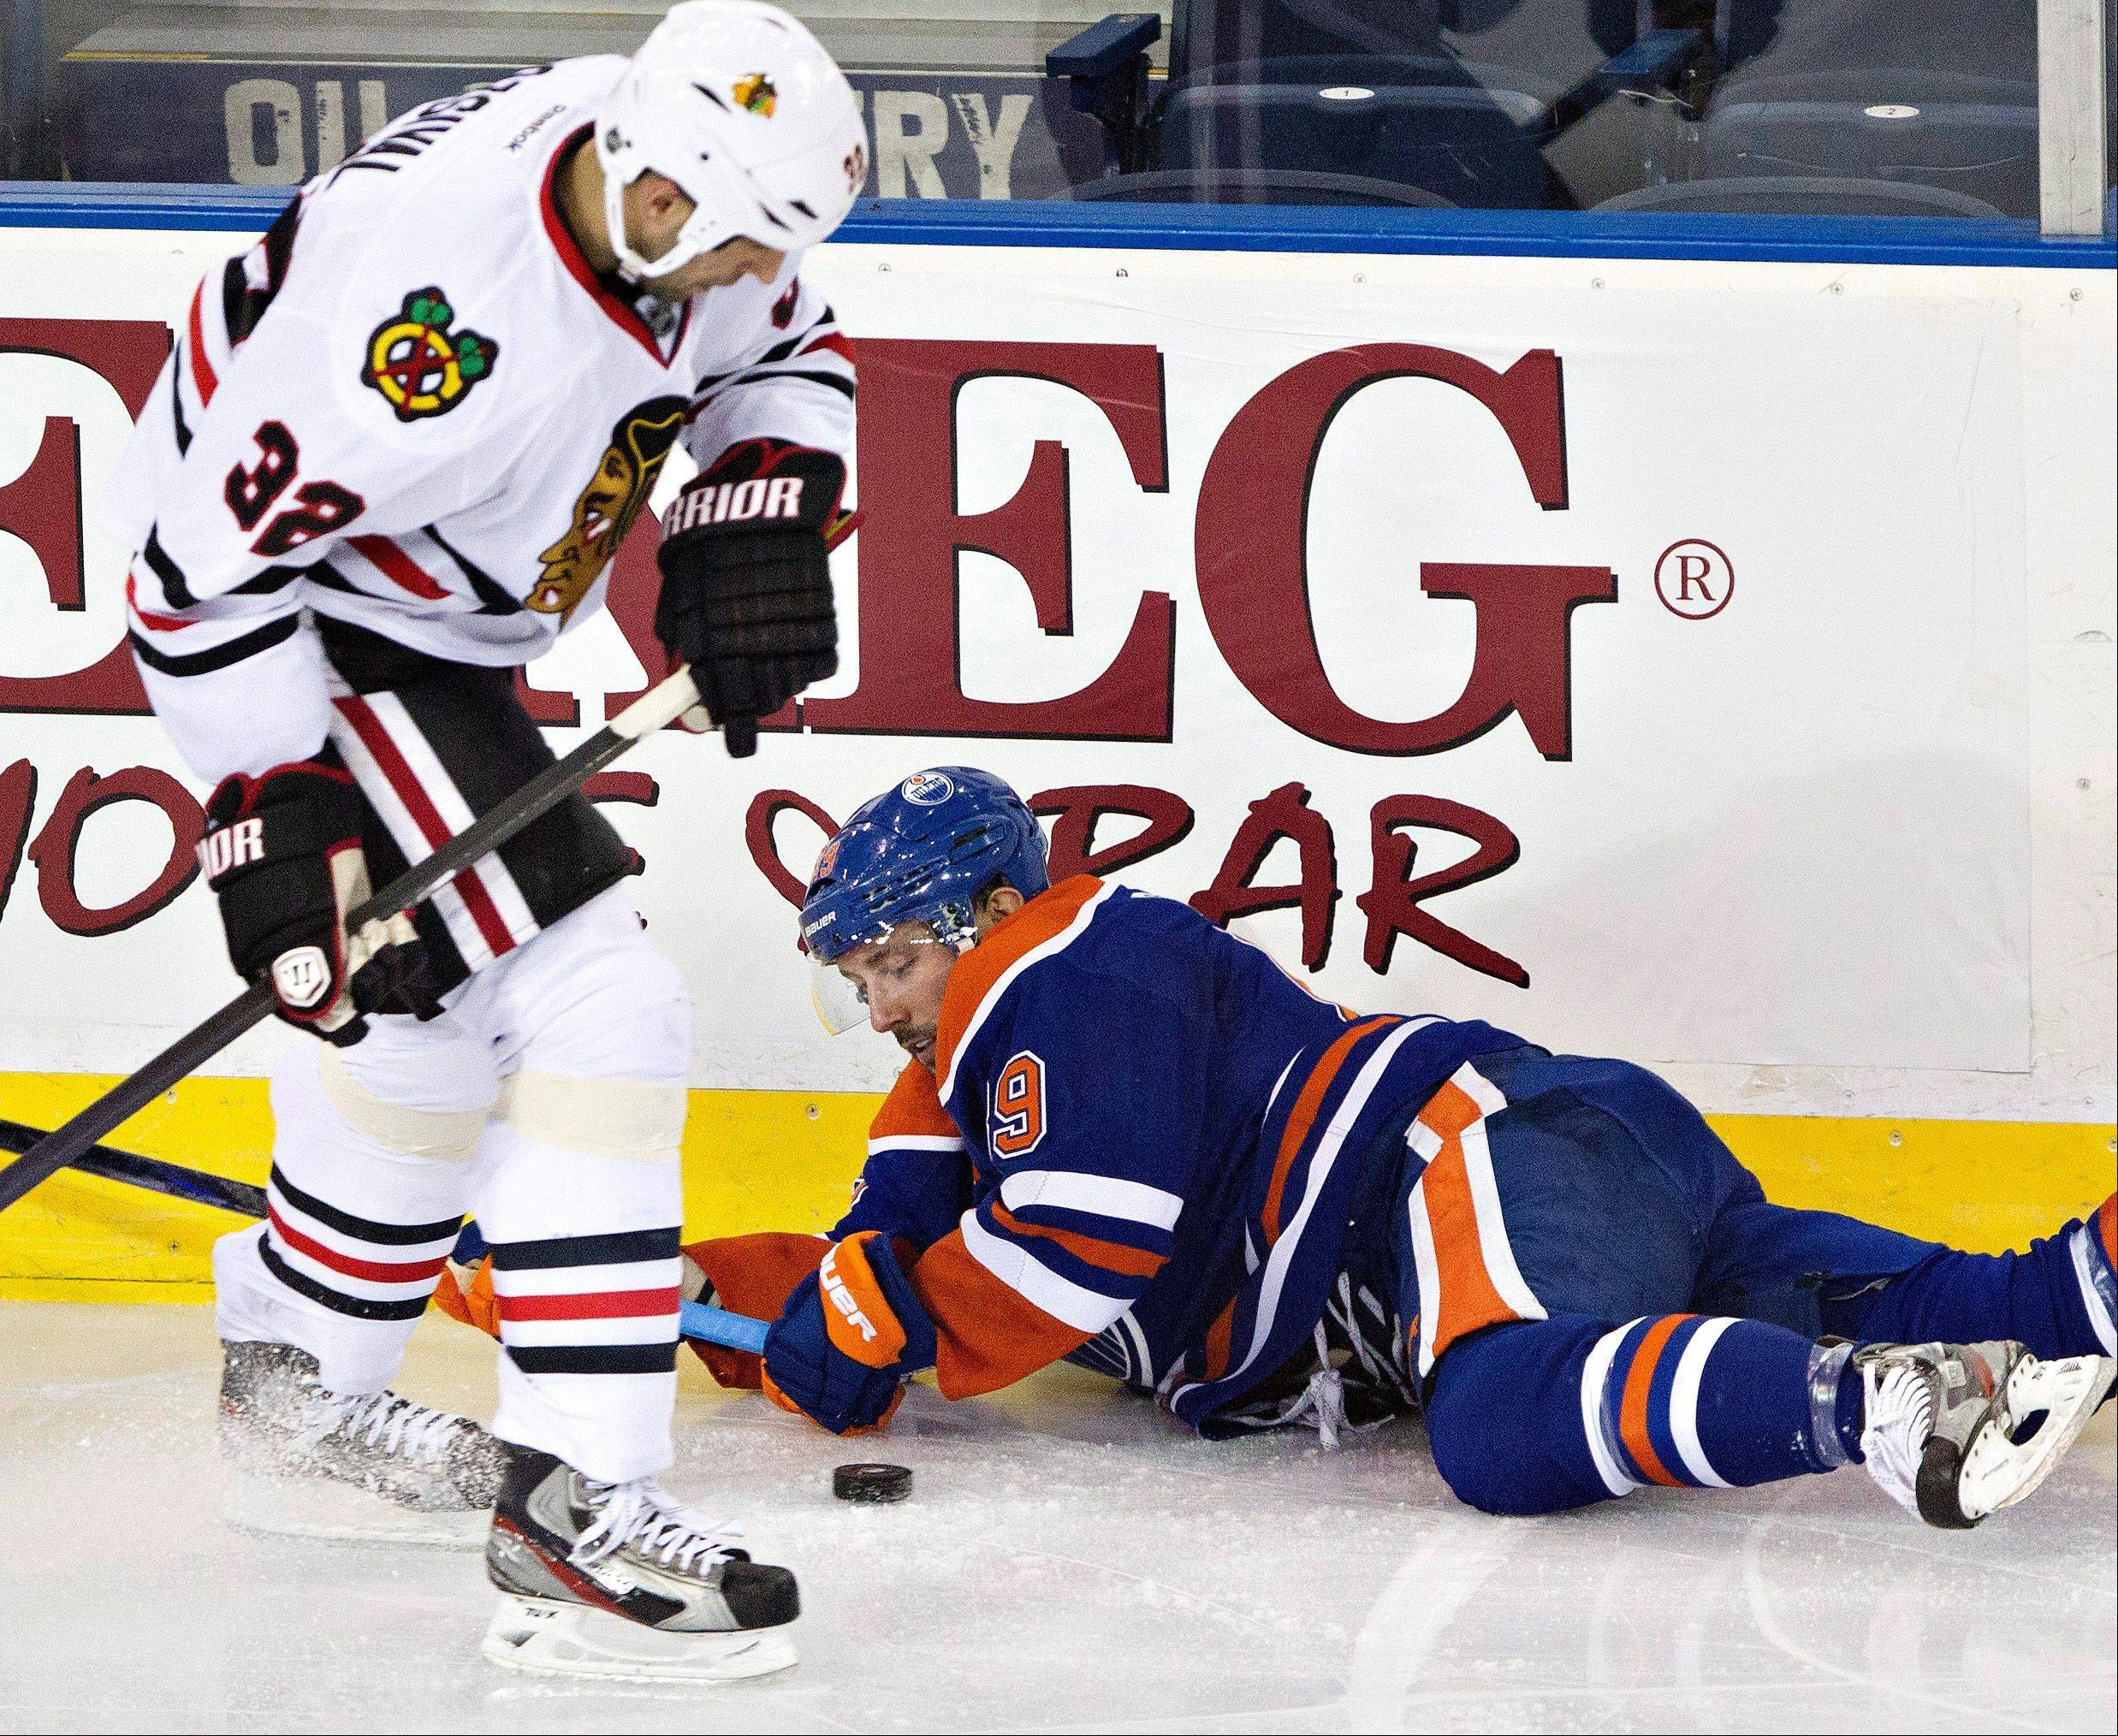 Chicago Blackhawks' Michal Rozsival, left, battles for the puck with Edmonton Oilers' Sam Gagner during the second period of their NHL hockey game in Edmonton, Alberta, Wednesday, April 24, 2013.